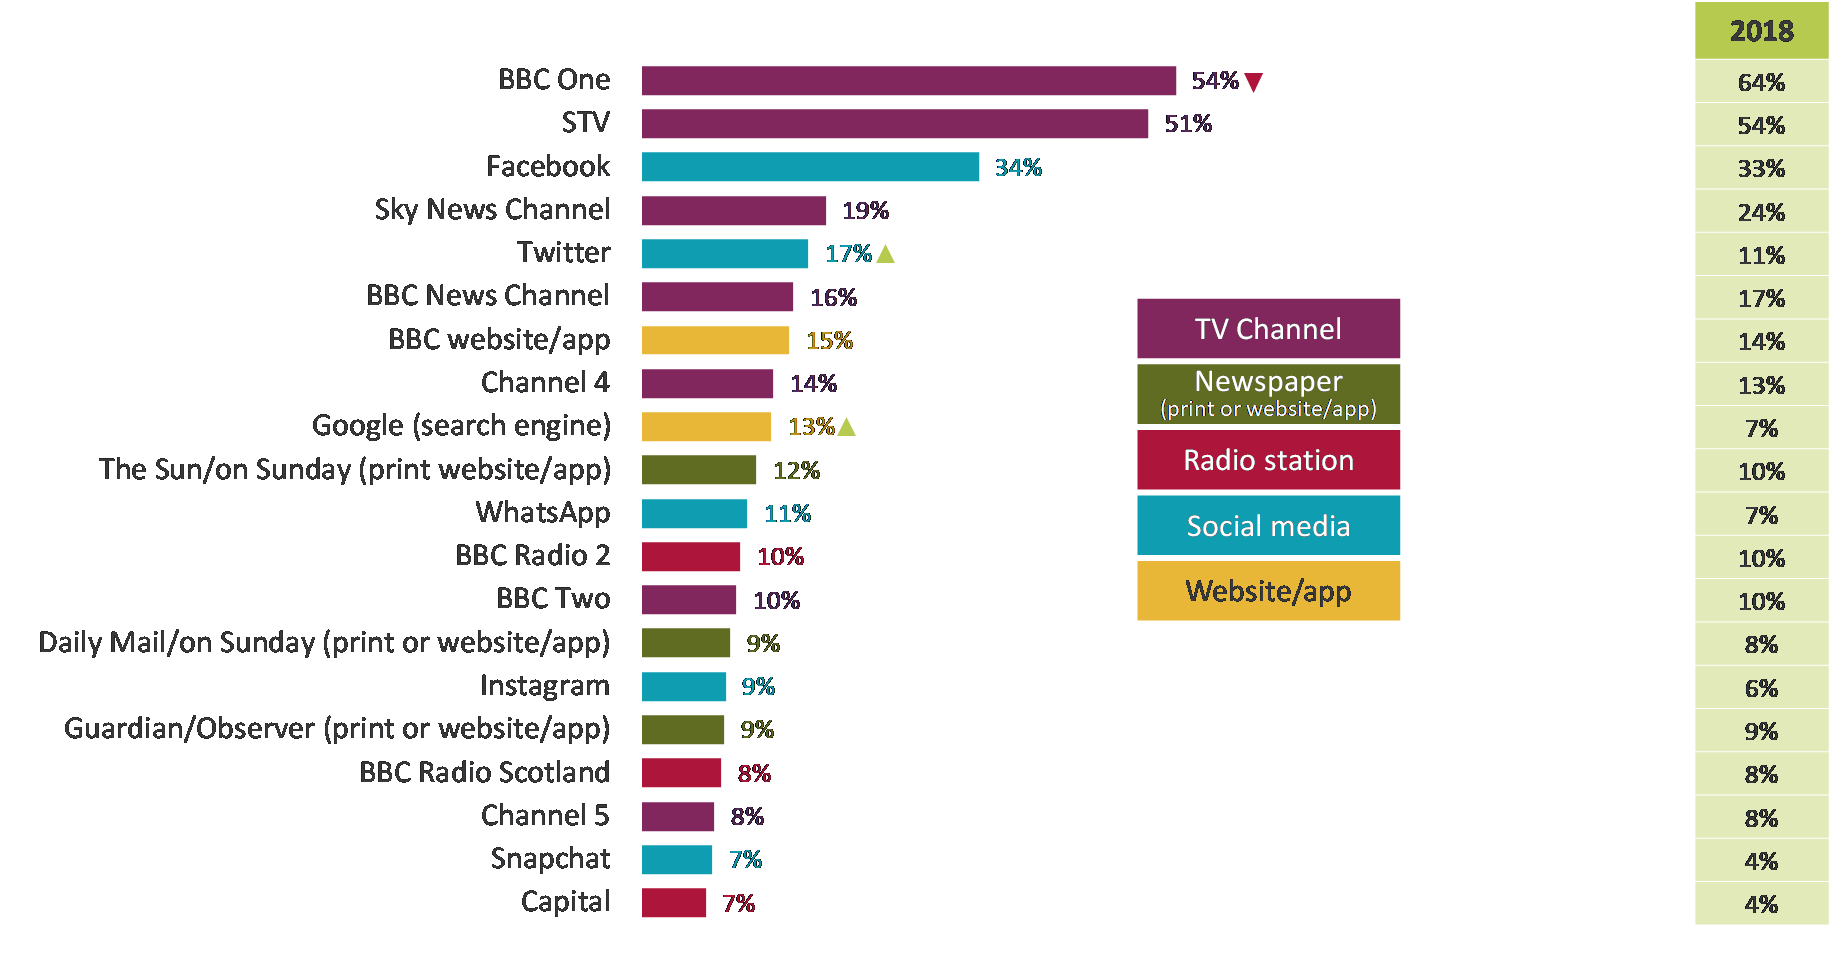 BBC One was the top source of news in Scotland in 2018 (54%), but Facebook isn't too far behind (34%).